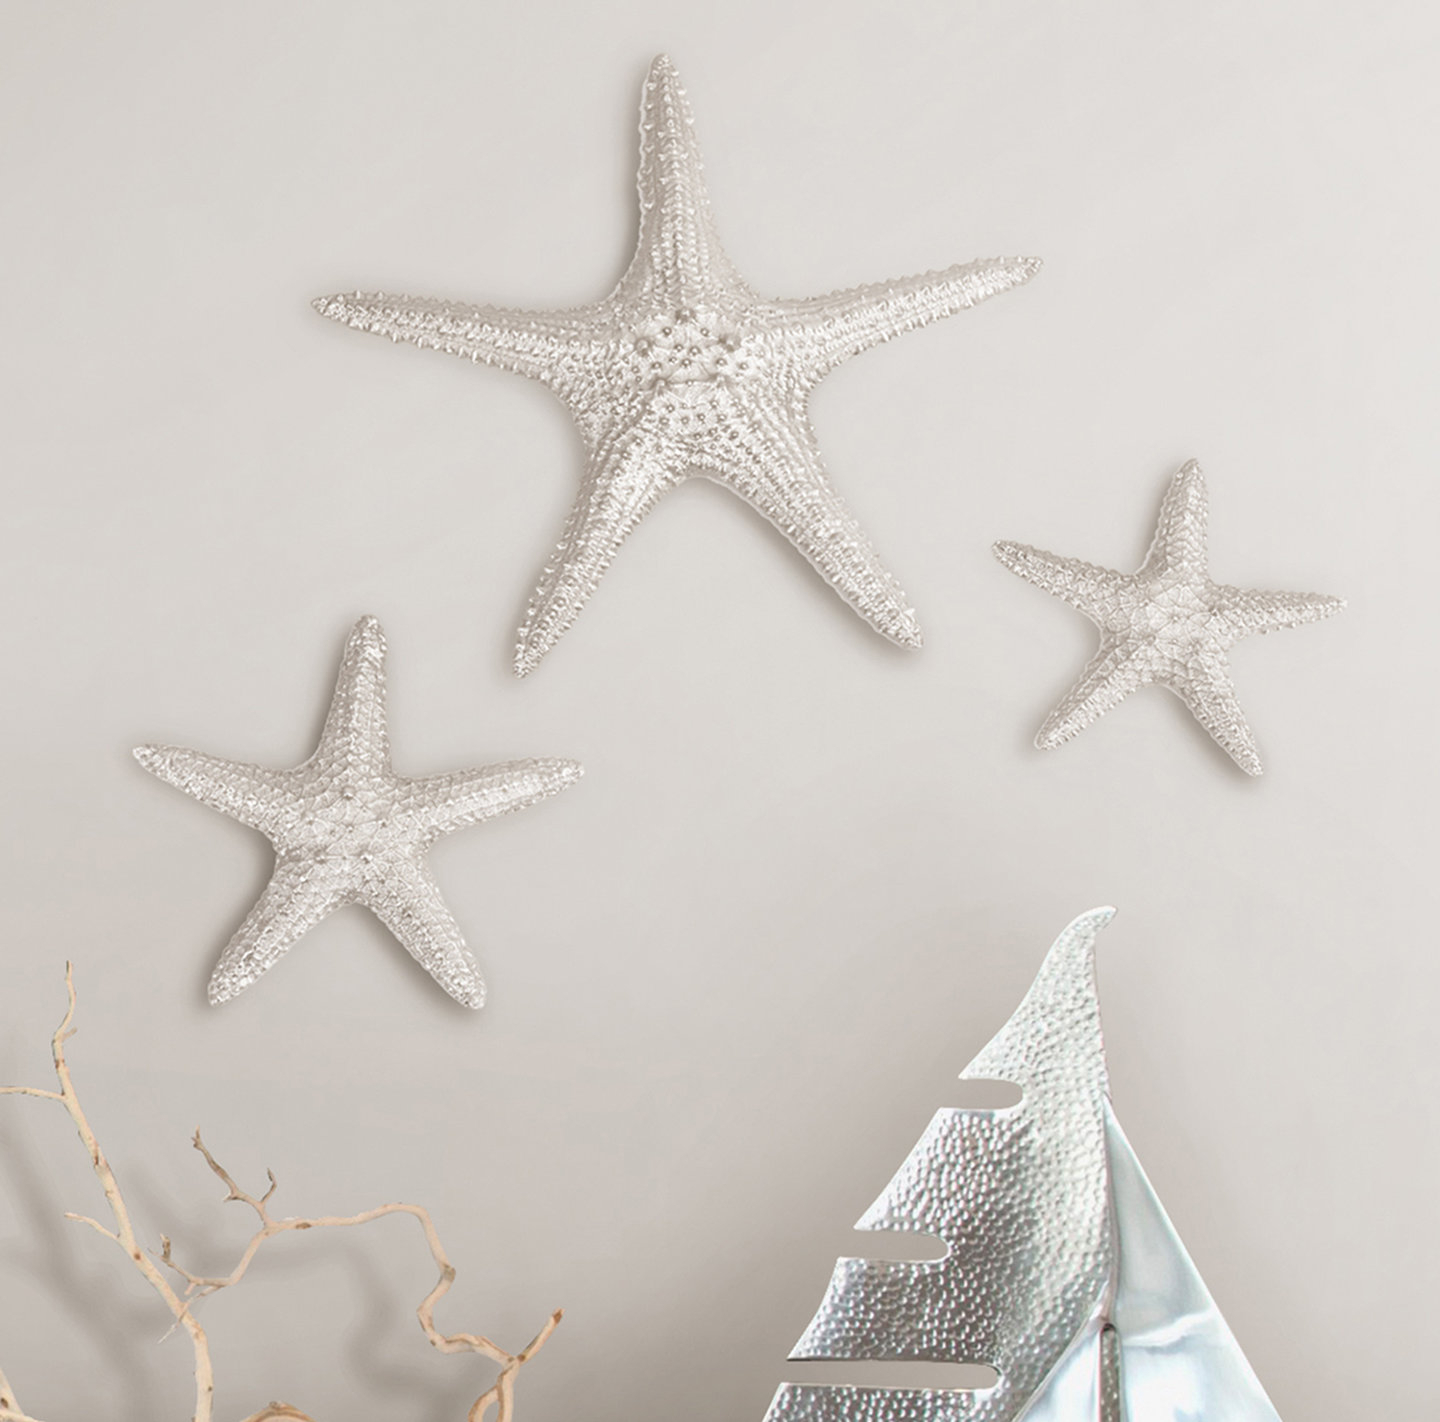 Yelton 3 Piece Starfish Wall Decor Sets With Favorite Fetco Home Decor Yelton 3 Piece Starfish Wall Décor Set & Reviews (Gallery 1 of 20)